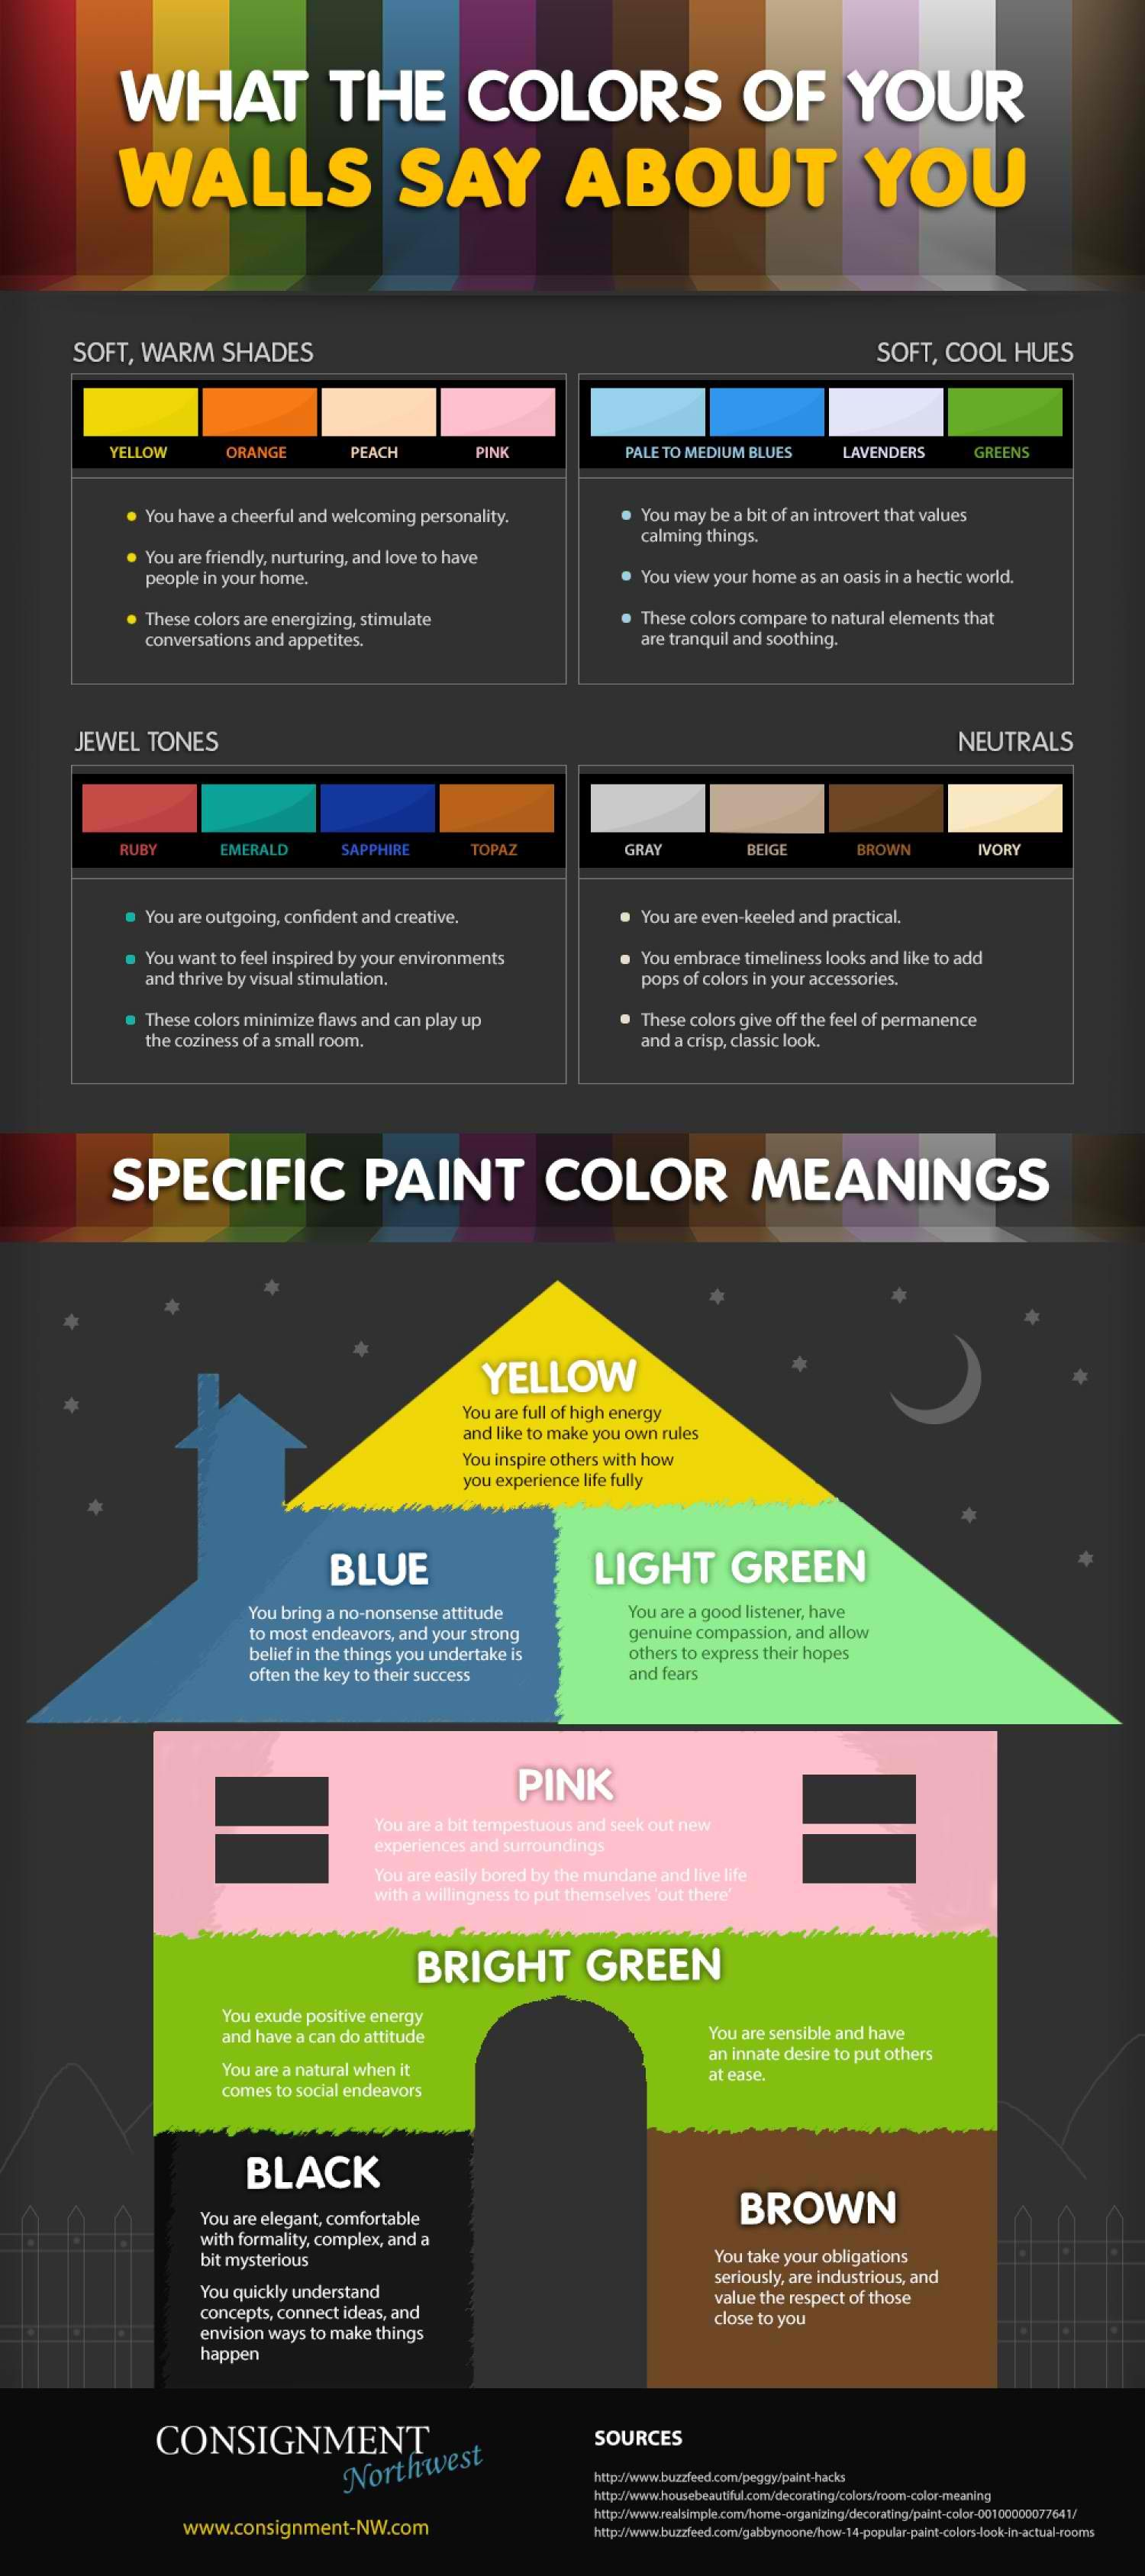 What The Color Of Your Walls Say About You Interior Design Principles Color Meanings Color